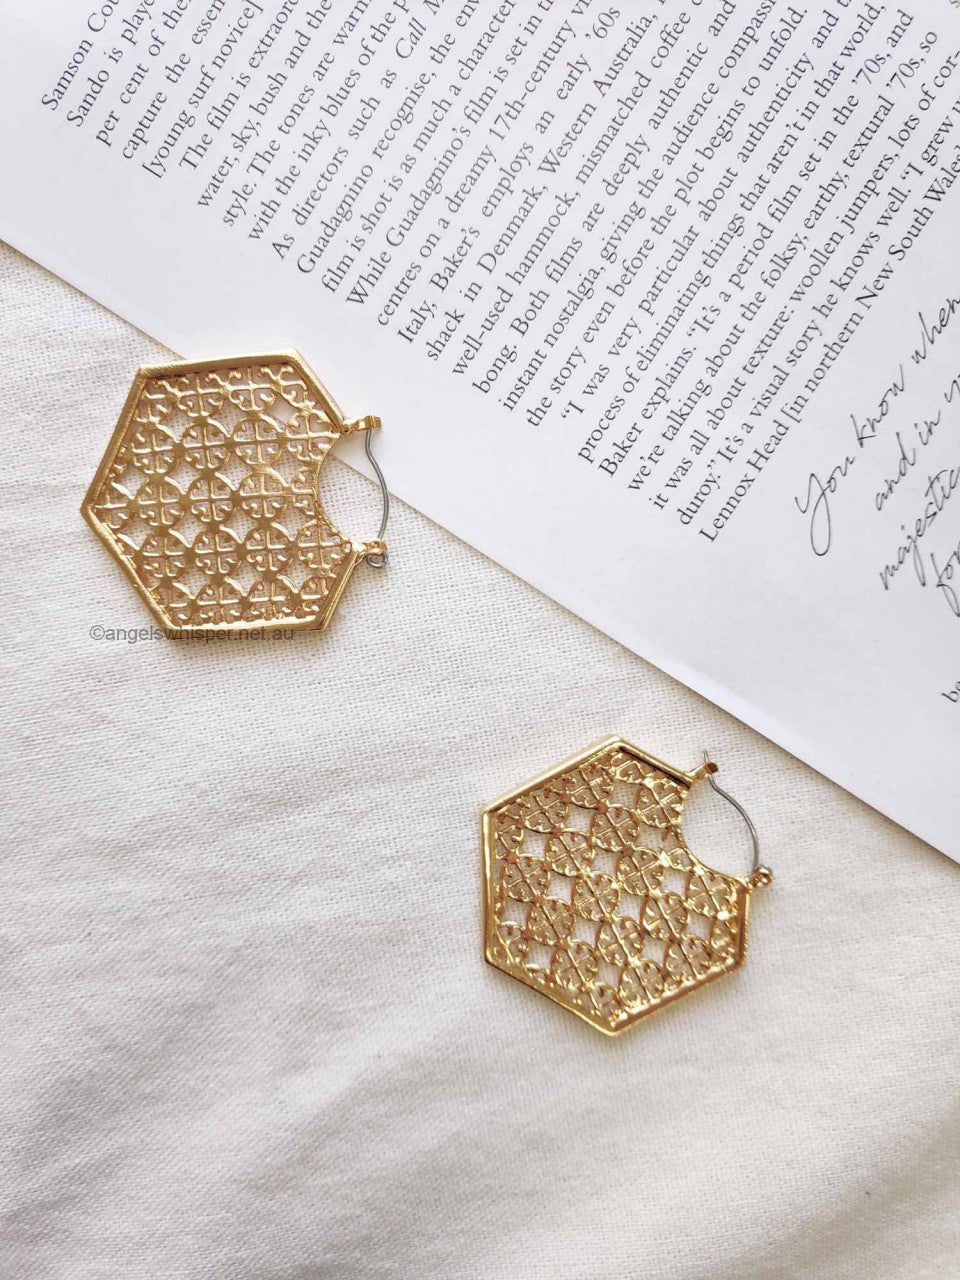 Angels Whsiper - Kinley Motif Earrings